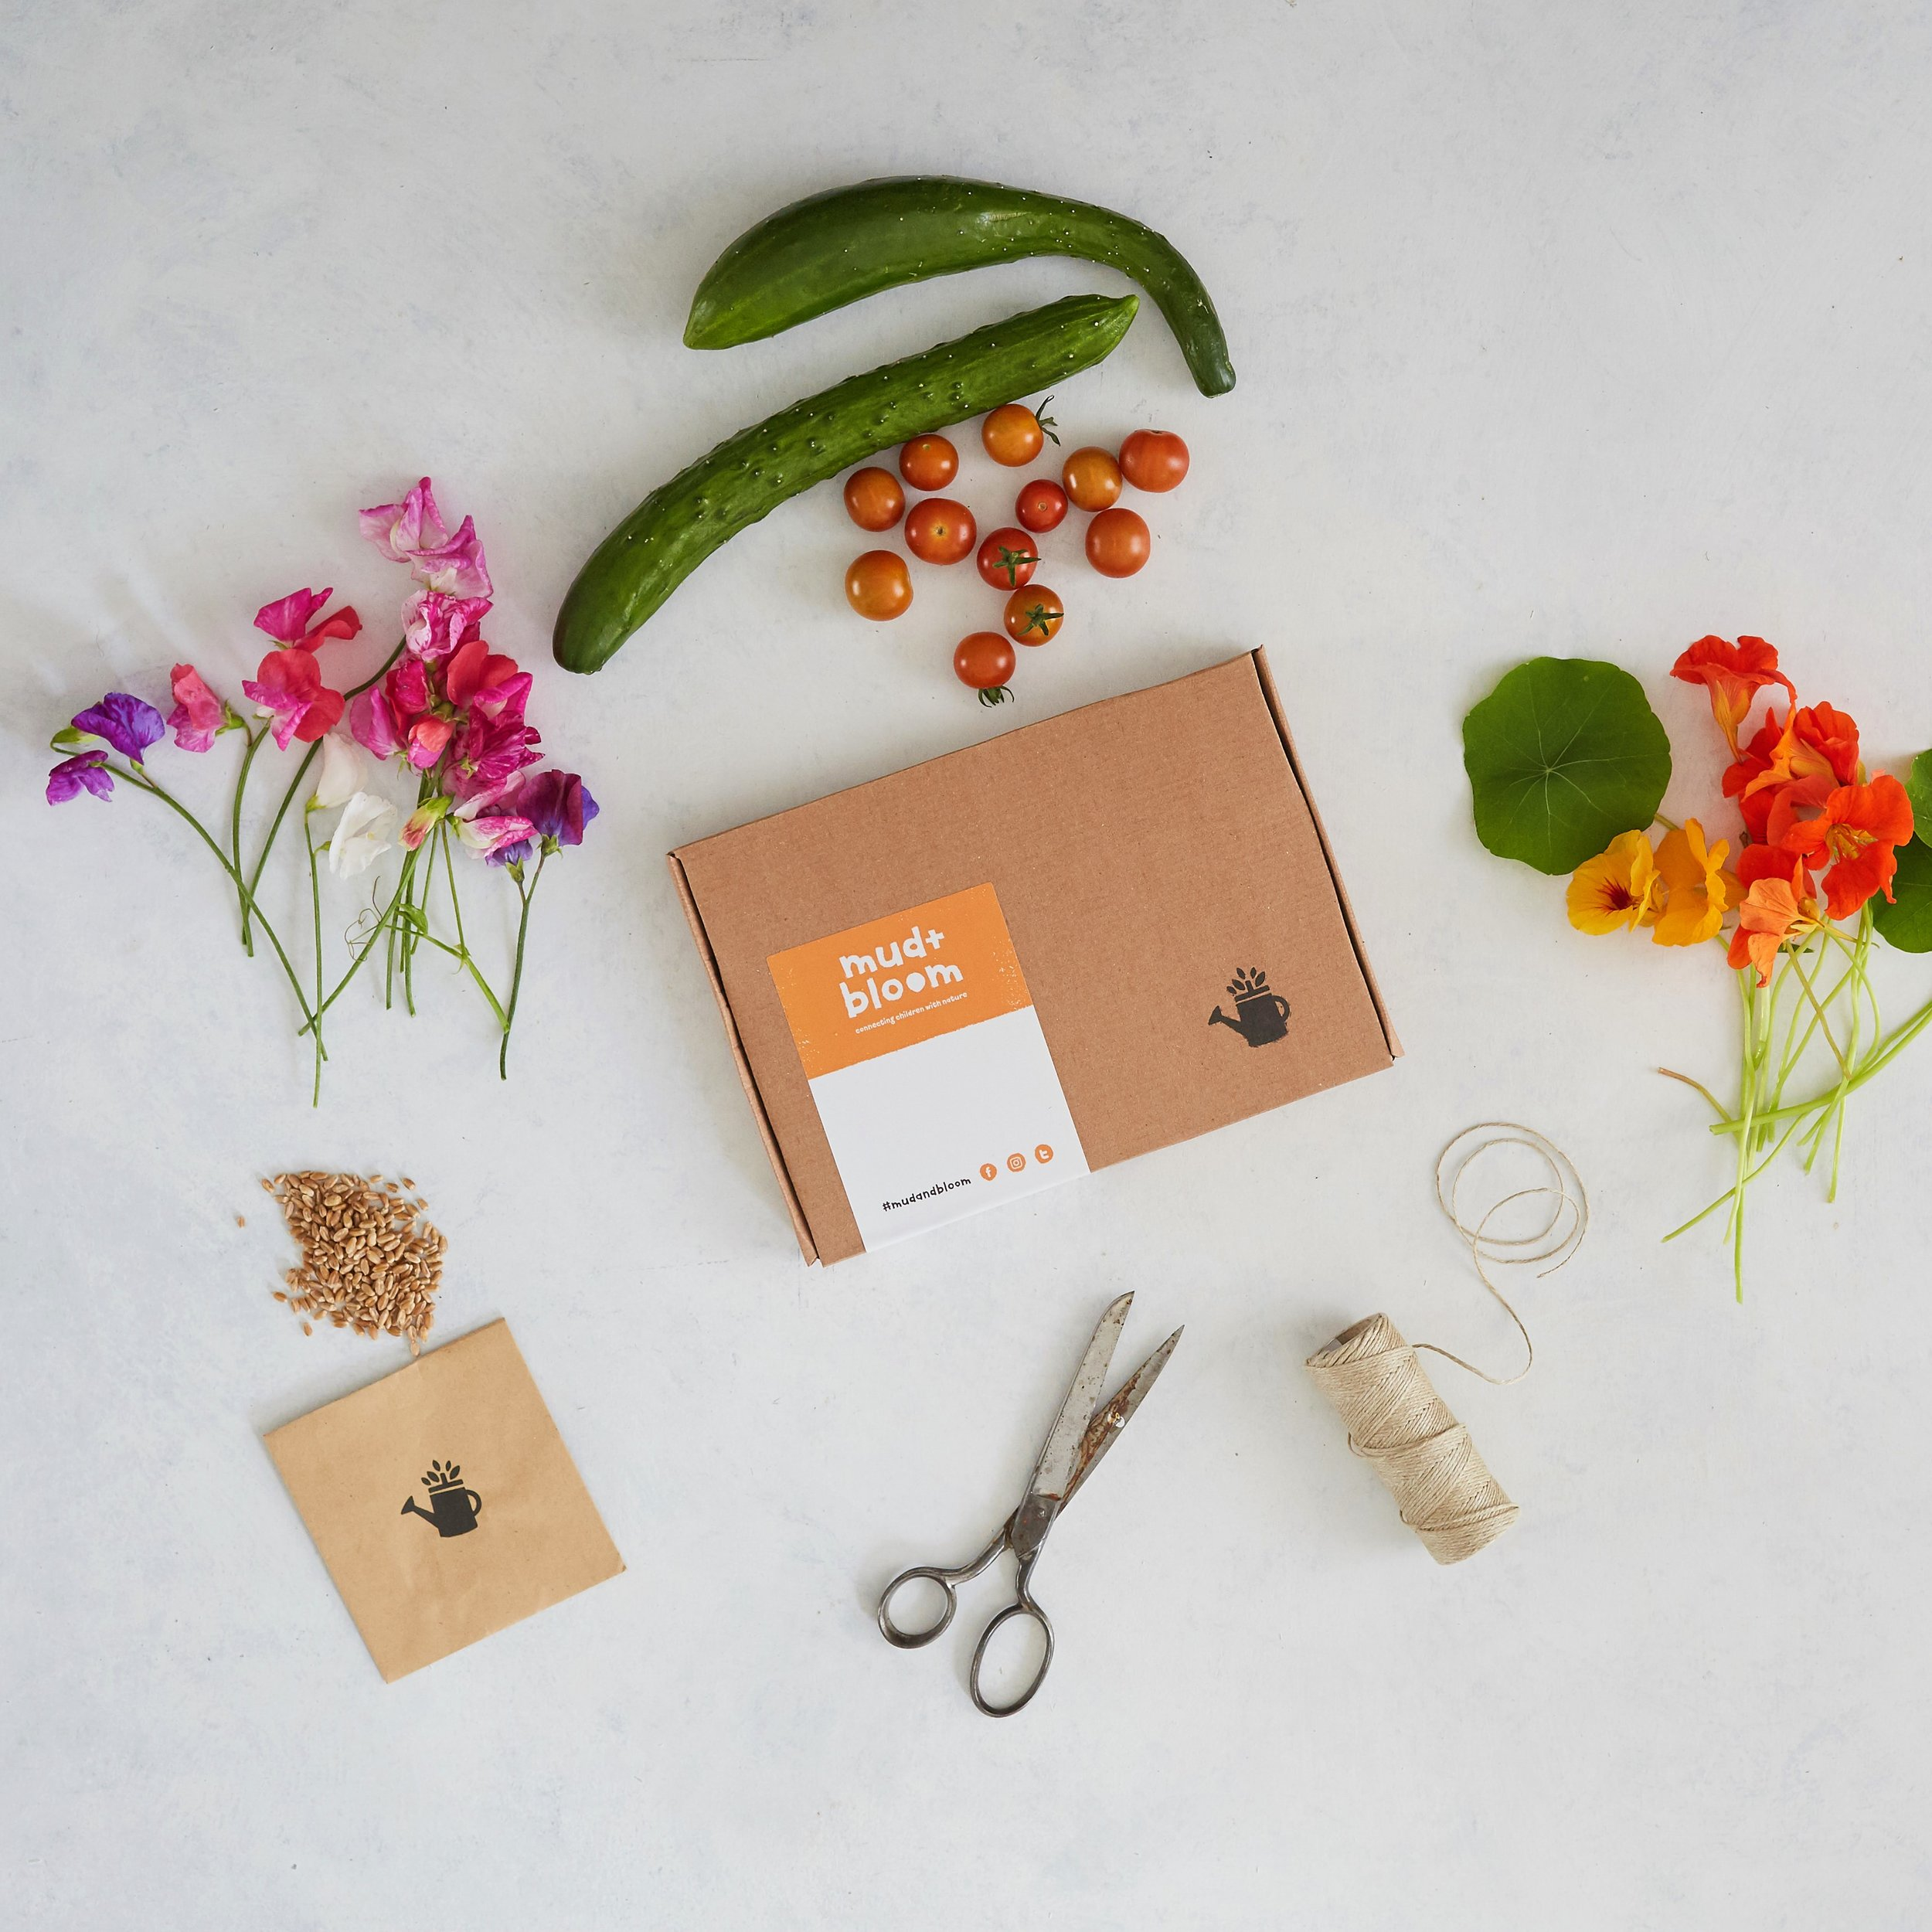 Annual Craft/Garden Subscription: MudnBloom